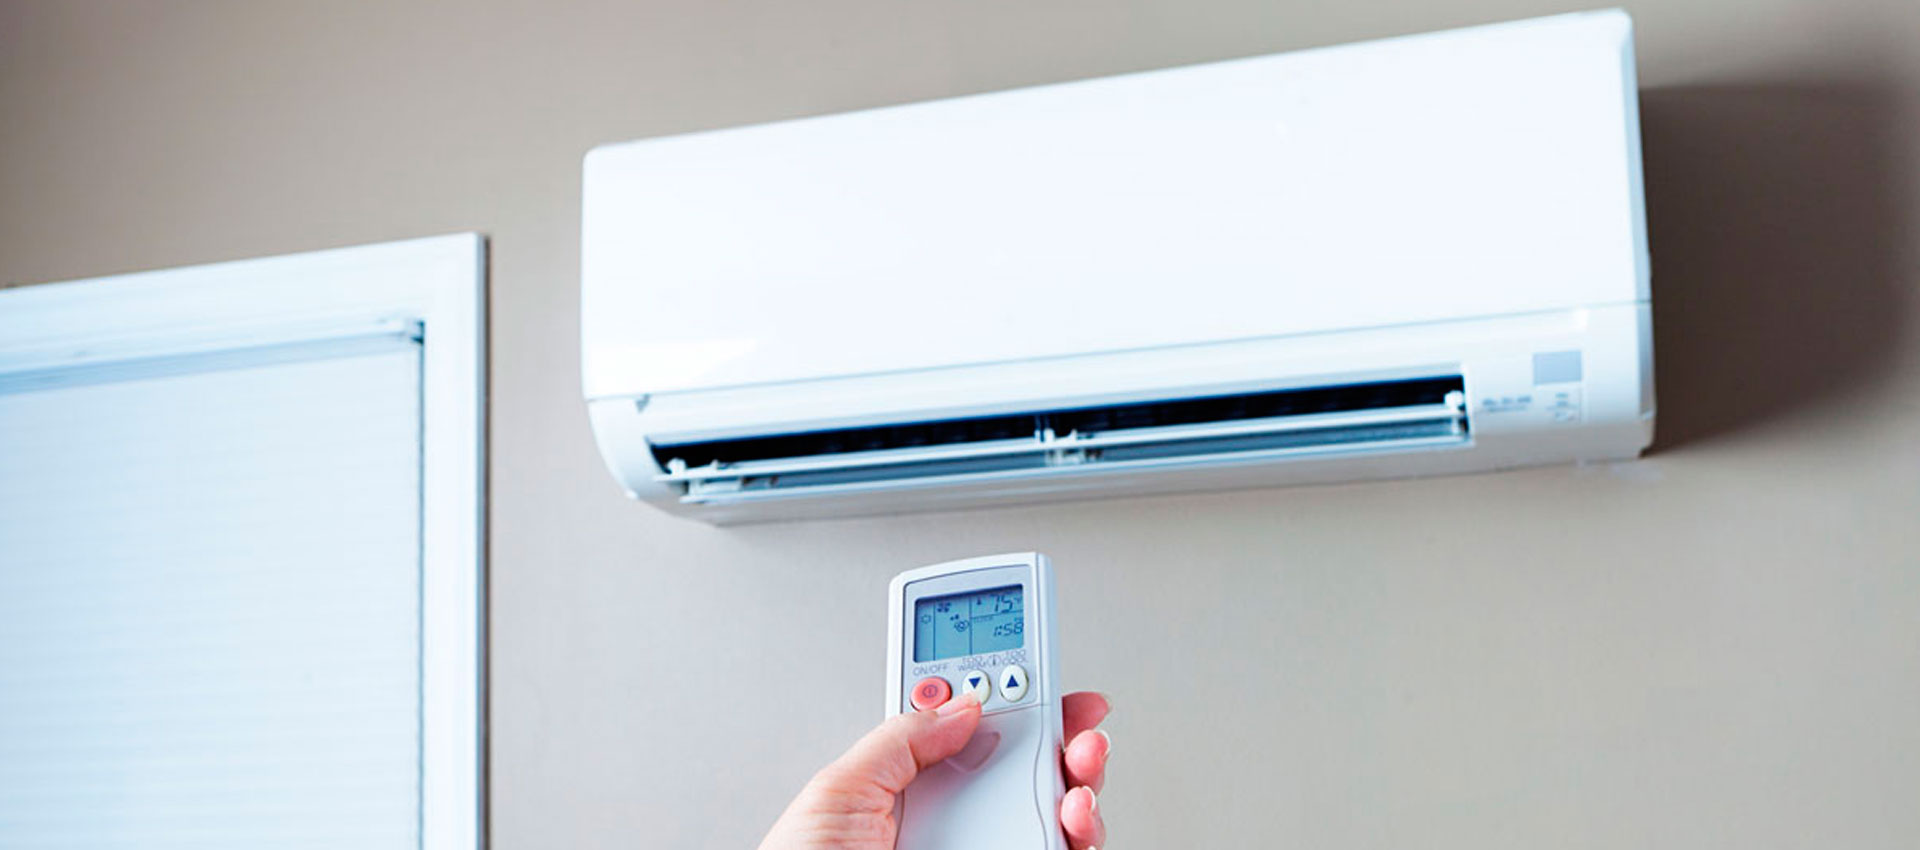 What You Need To Know Before Installing An Air Conditioner